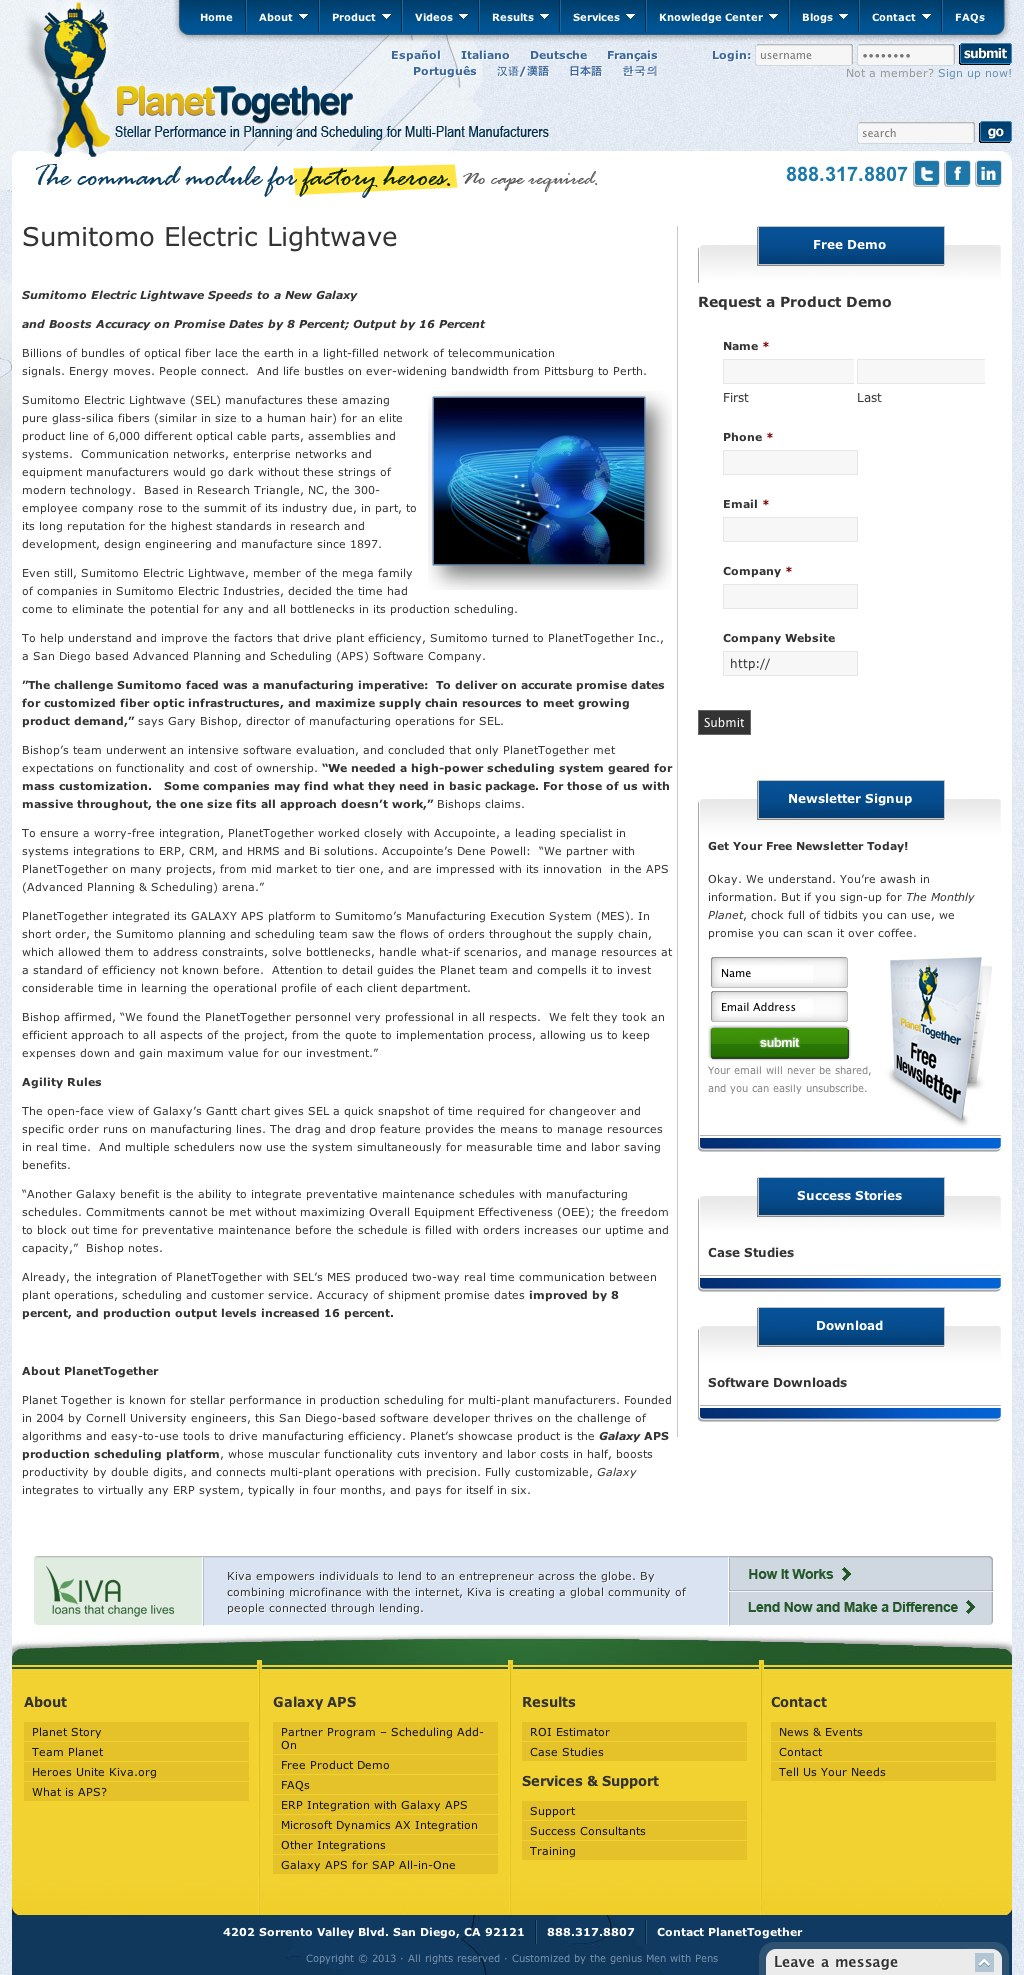 http___planettogether.com_results_case-studies_sumitomo-electric-lightwave_